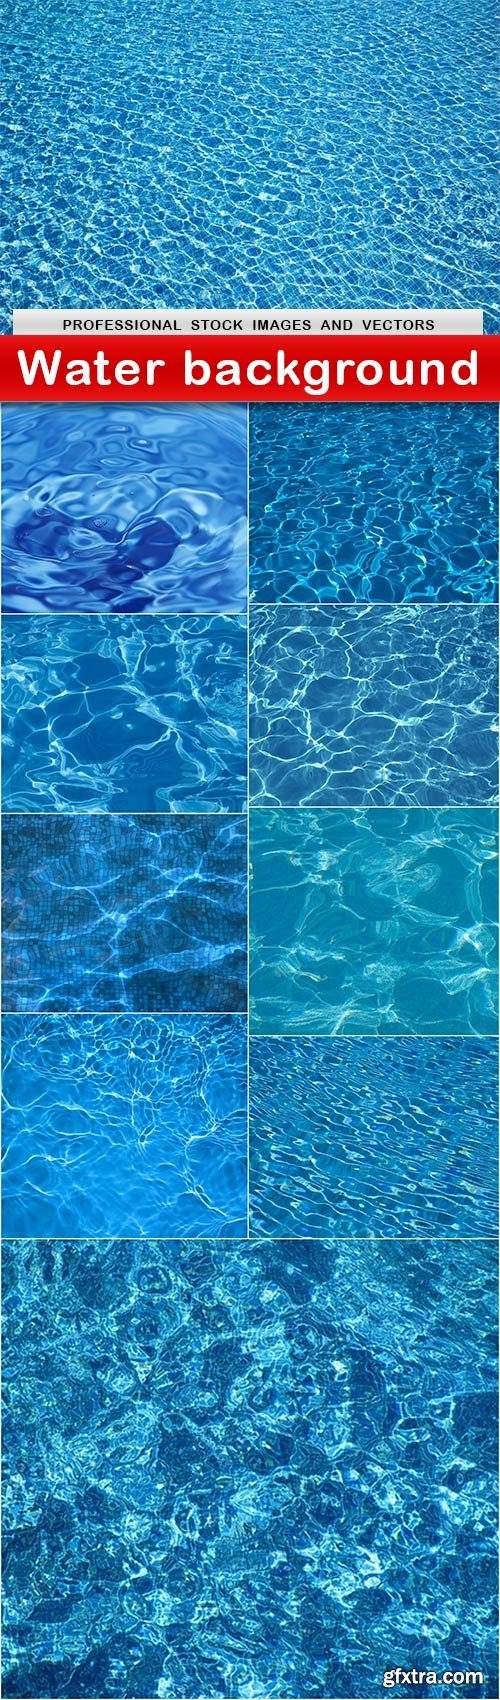 Water background - 10 UHQ JPEG